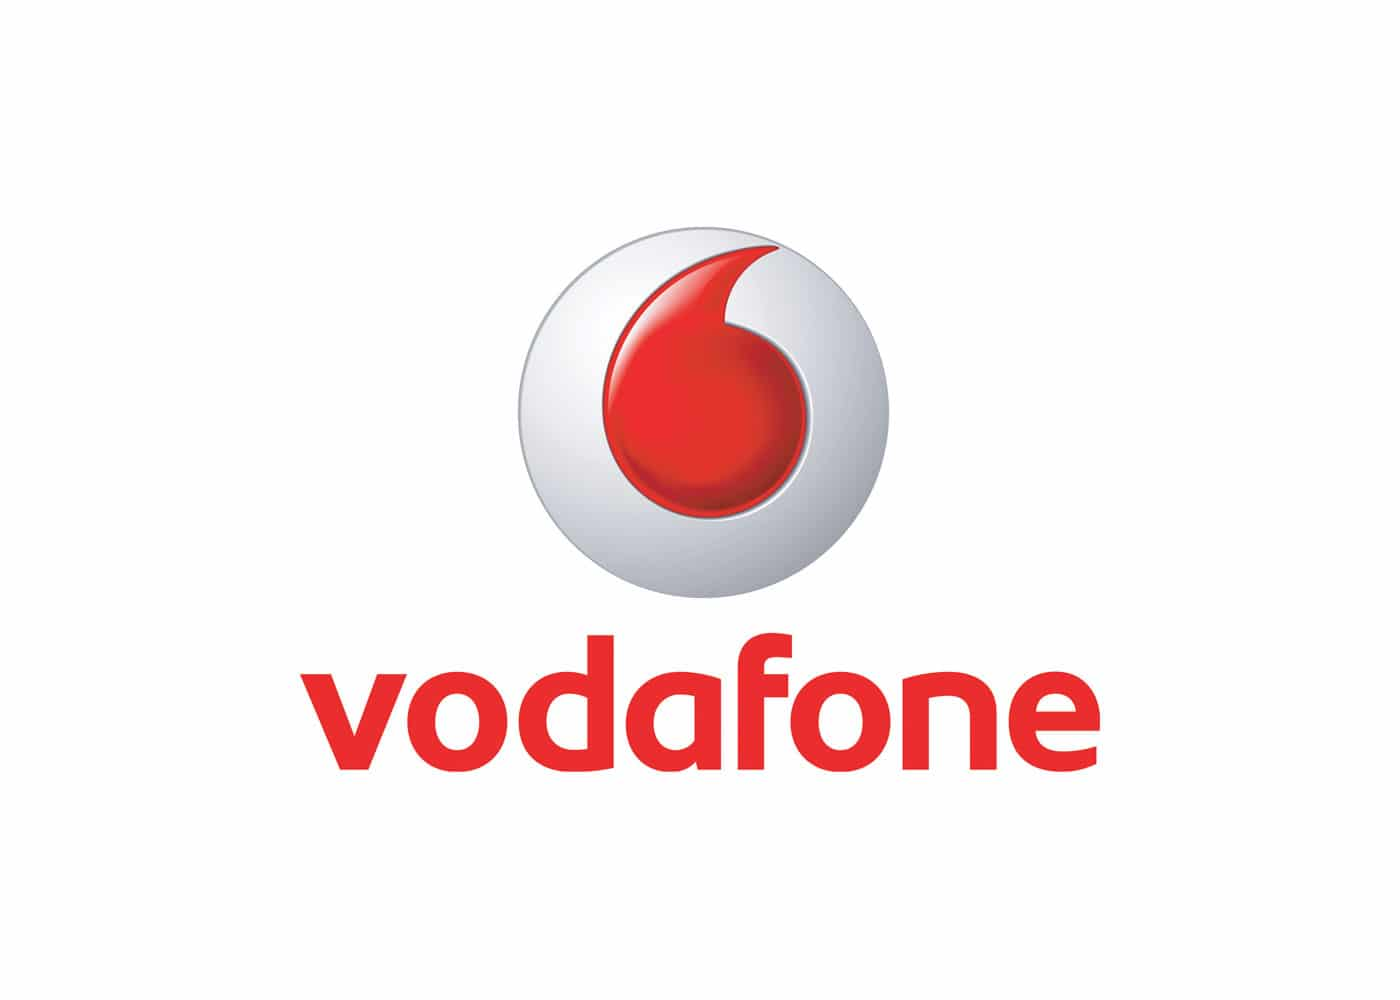 vodafone select video